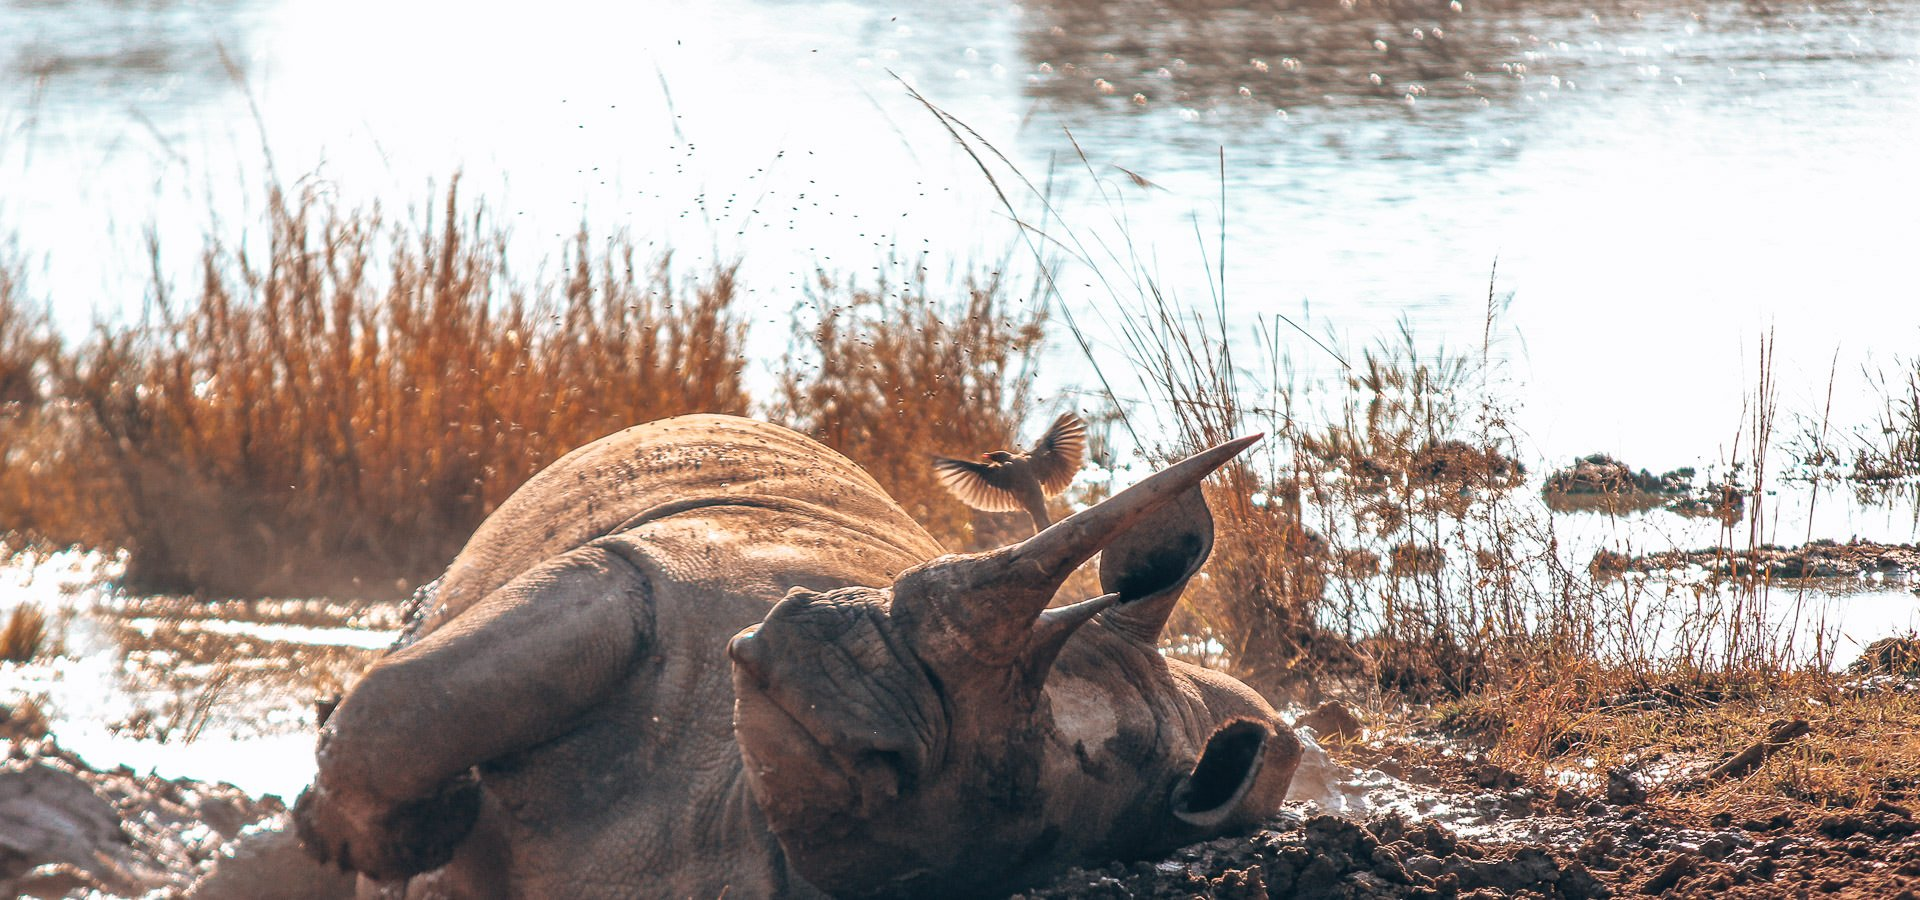 A Walk With Rhinos In Eswatini (formerly Swaziland) | walk with rhinos in swaziland 4